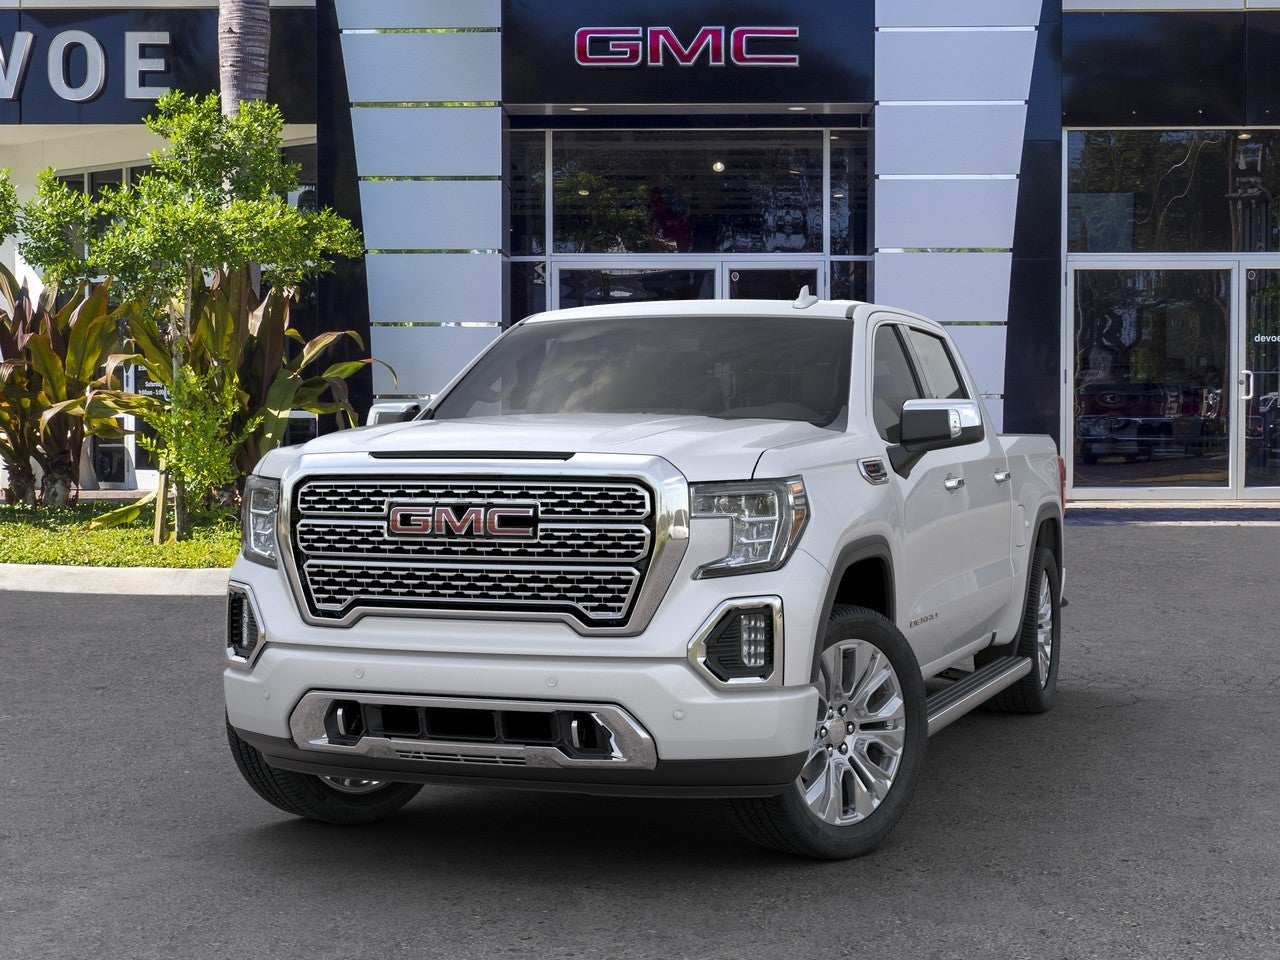 2020 GMC Sierra 1500 Crew Cab 4x4, Pickup #T20433 - photo 30